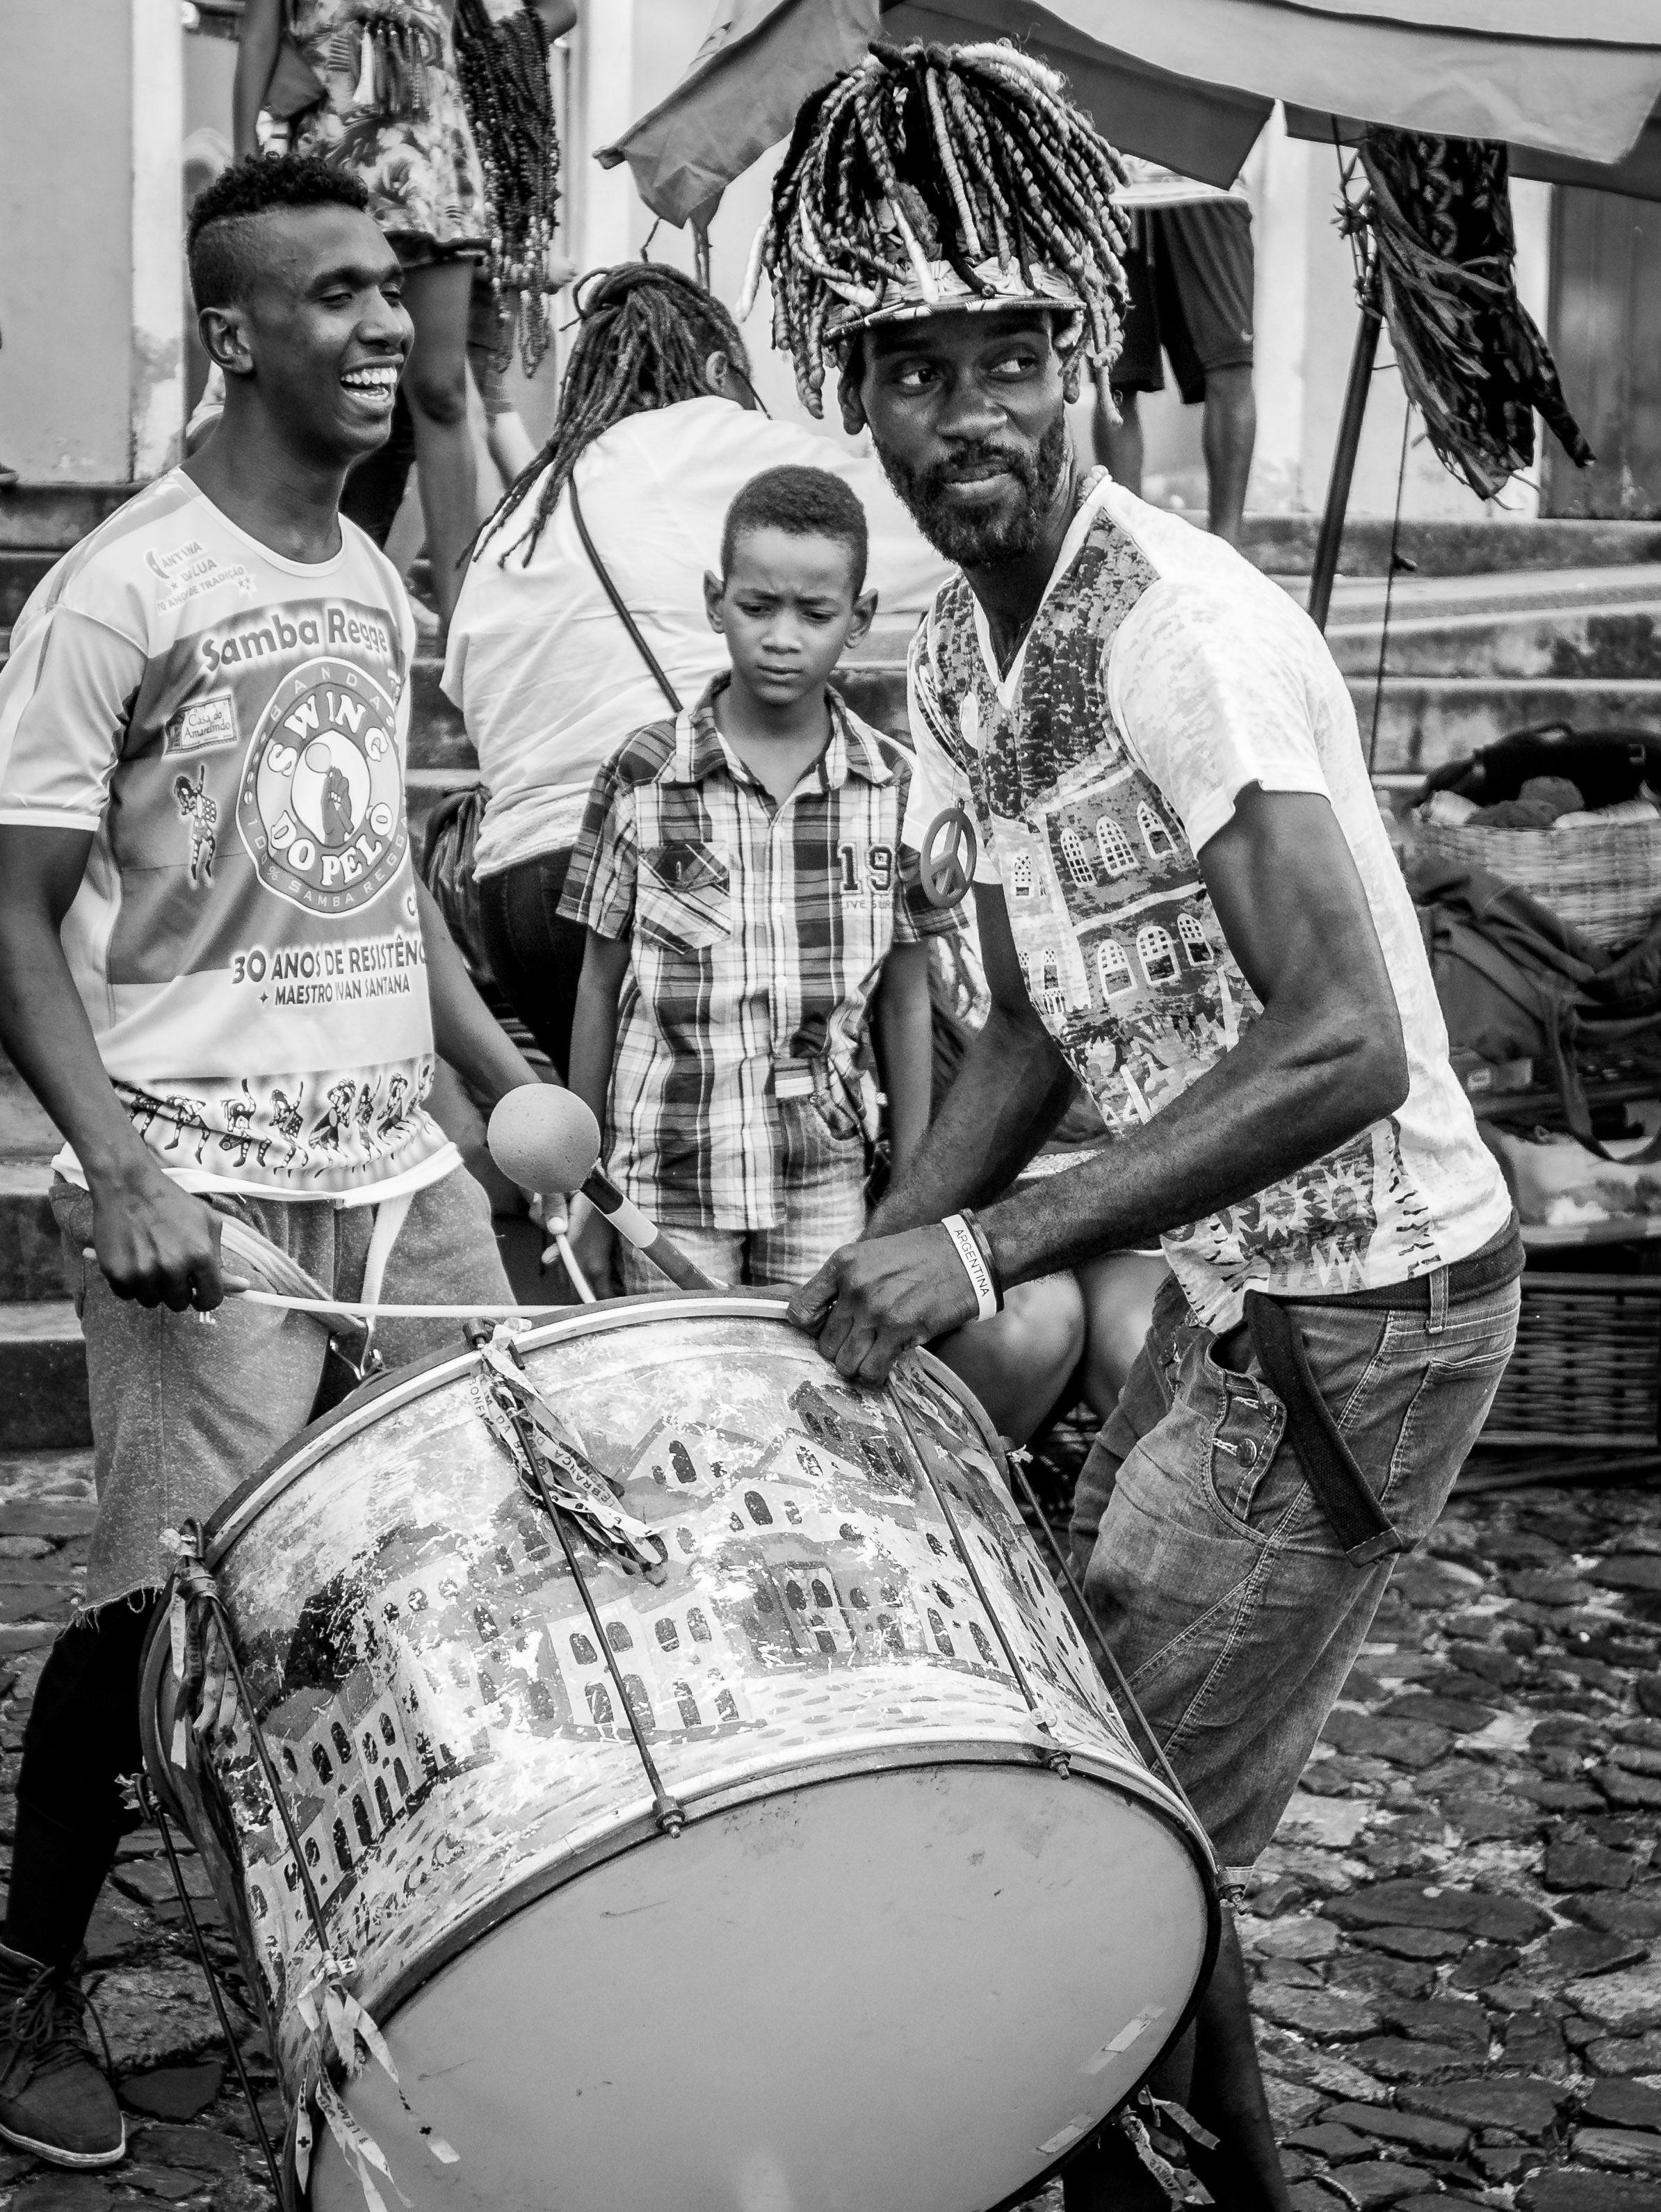 Men playing the drums black and white filter